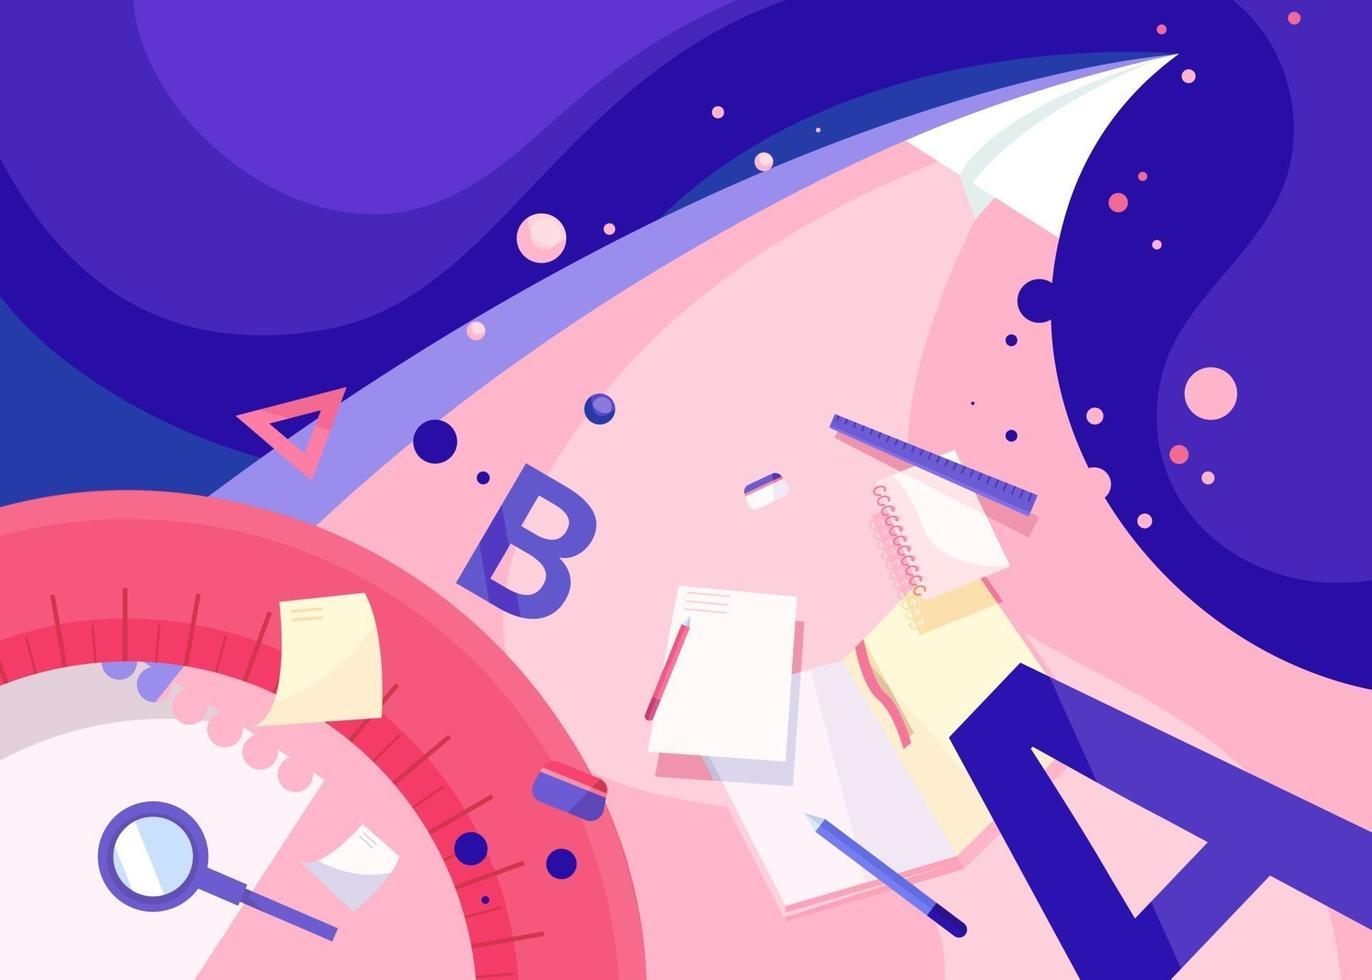 Abstract banner template with paper plane. School concept art. vector